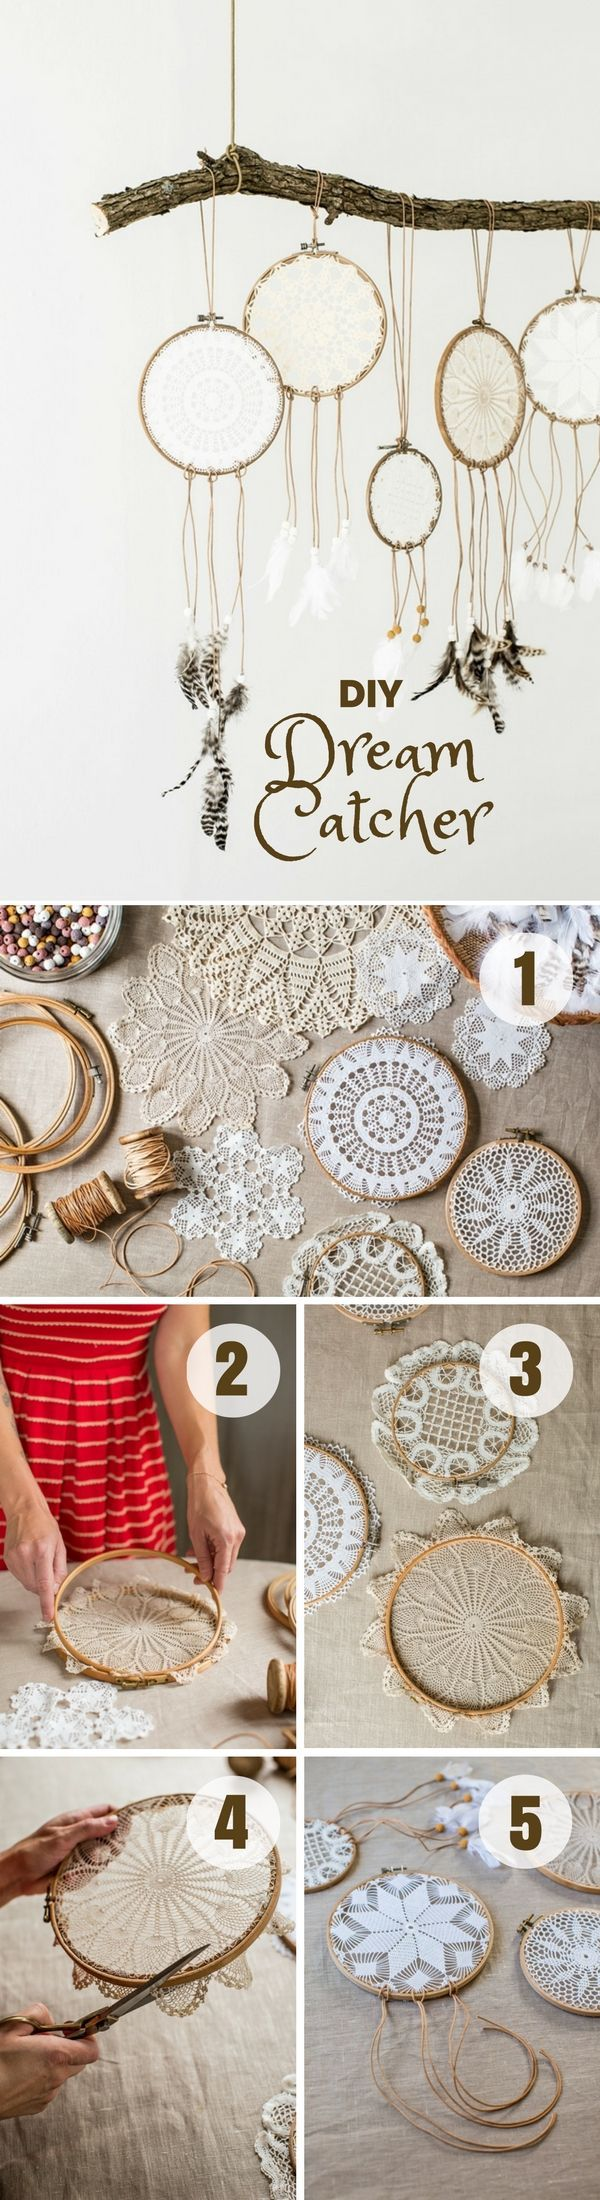 25 best ideas about diy dream catcher on pinterest for How to make dreamcatcher designs